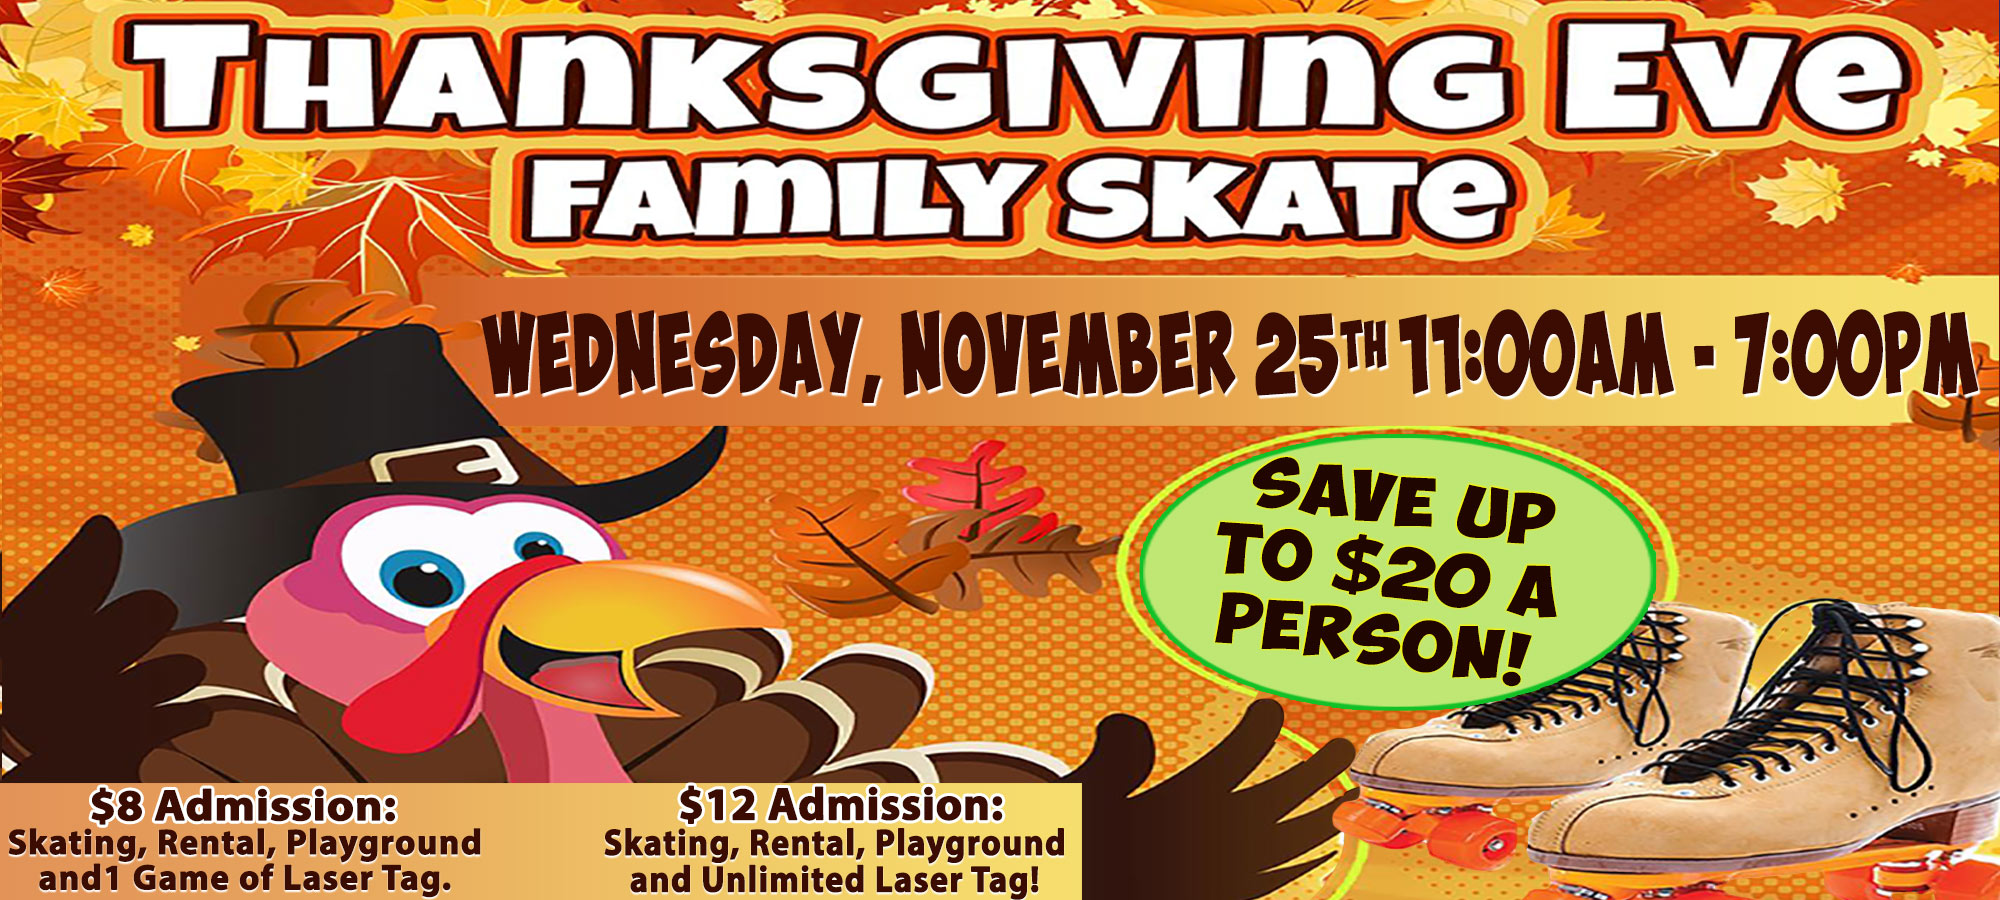 Thanksgiving-Eve-Skate-2020